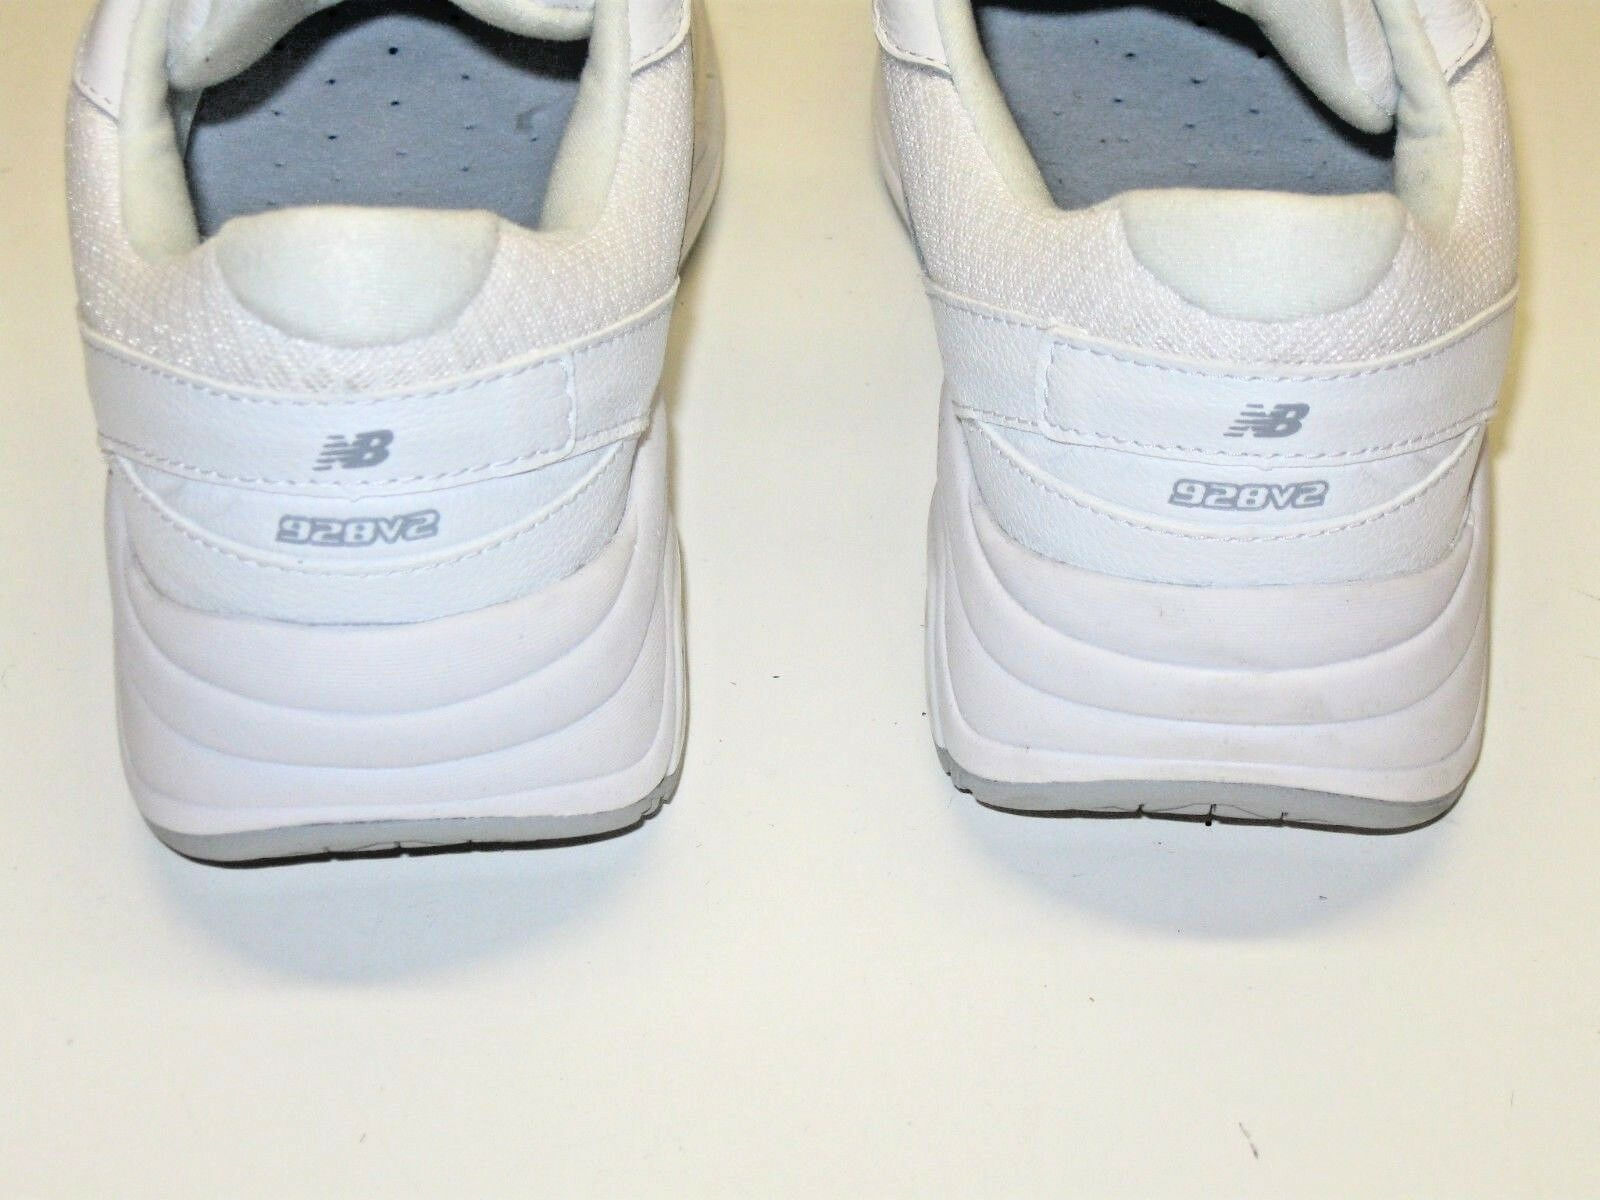 New Balance Athletic 928V2 Walking WEISS Leder Hook & Loop Athletic Balance Schuhes Damenschuhe 9 feb337